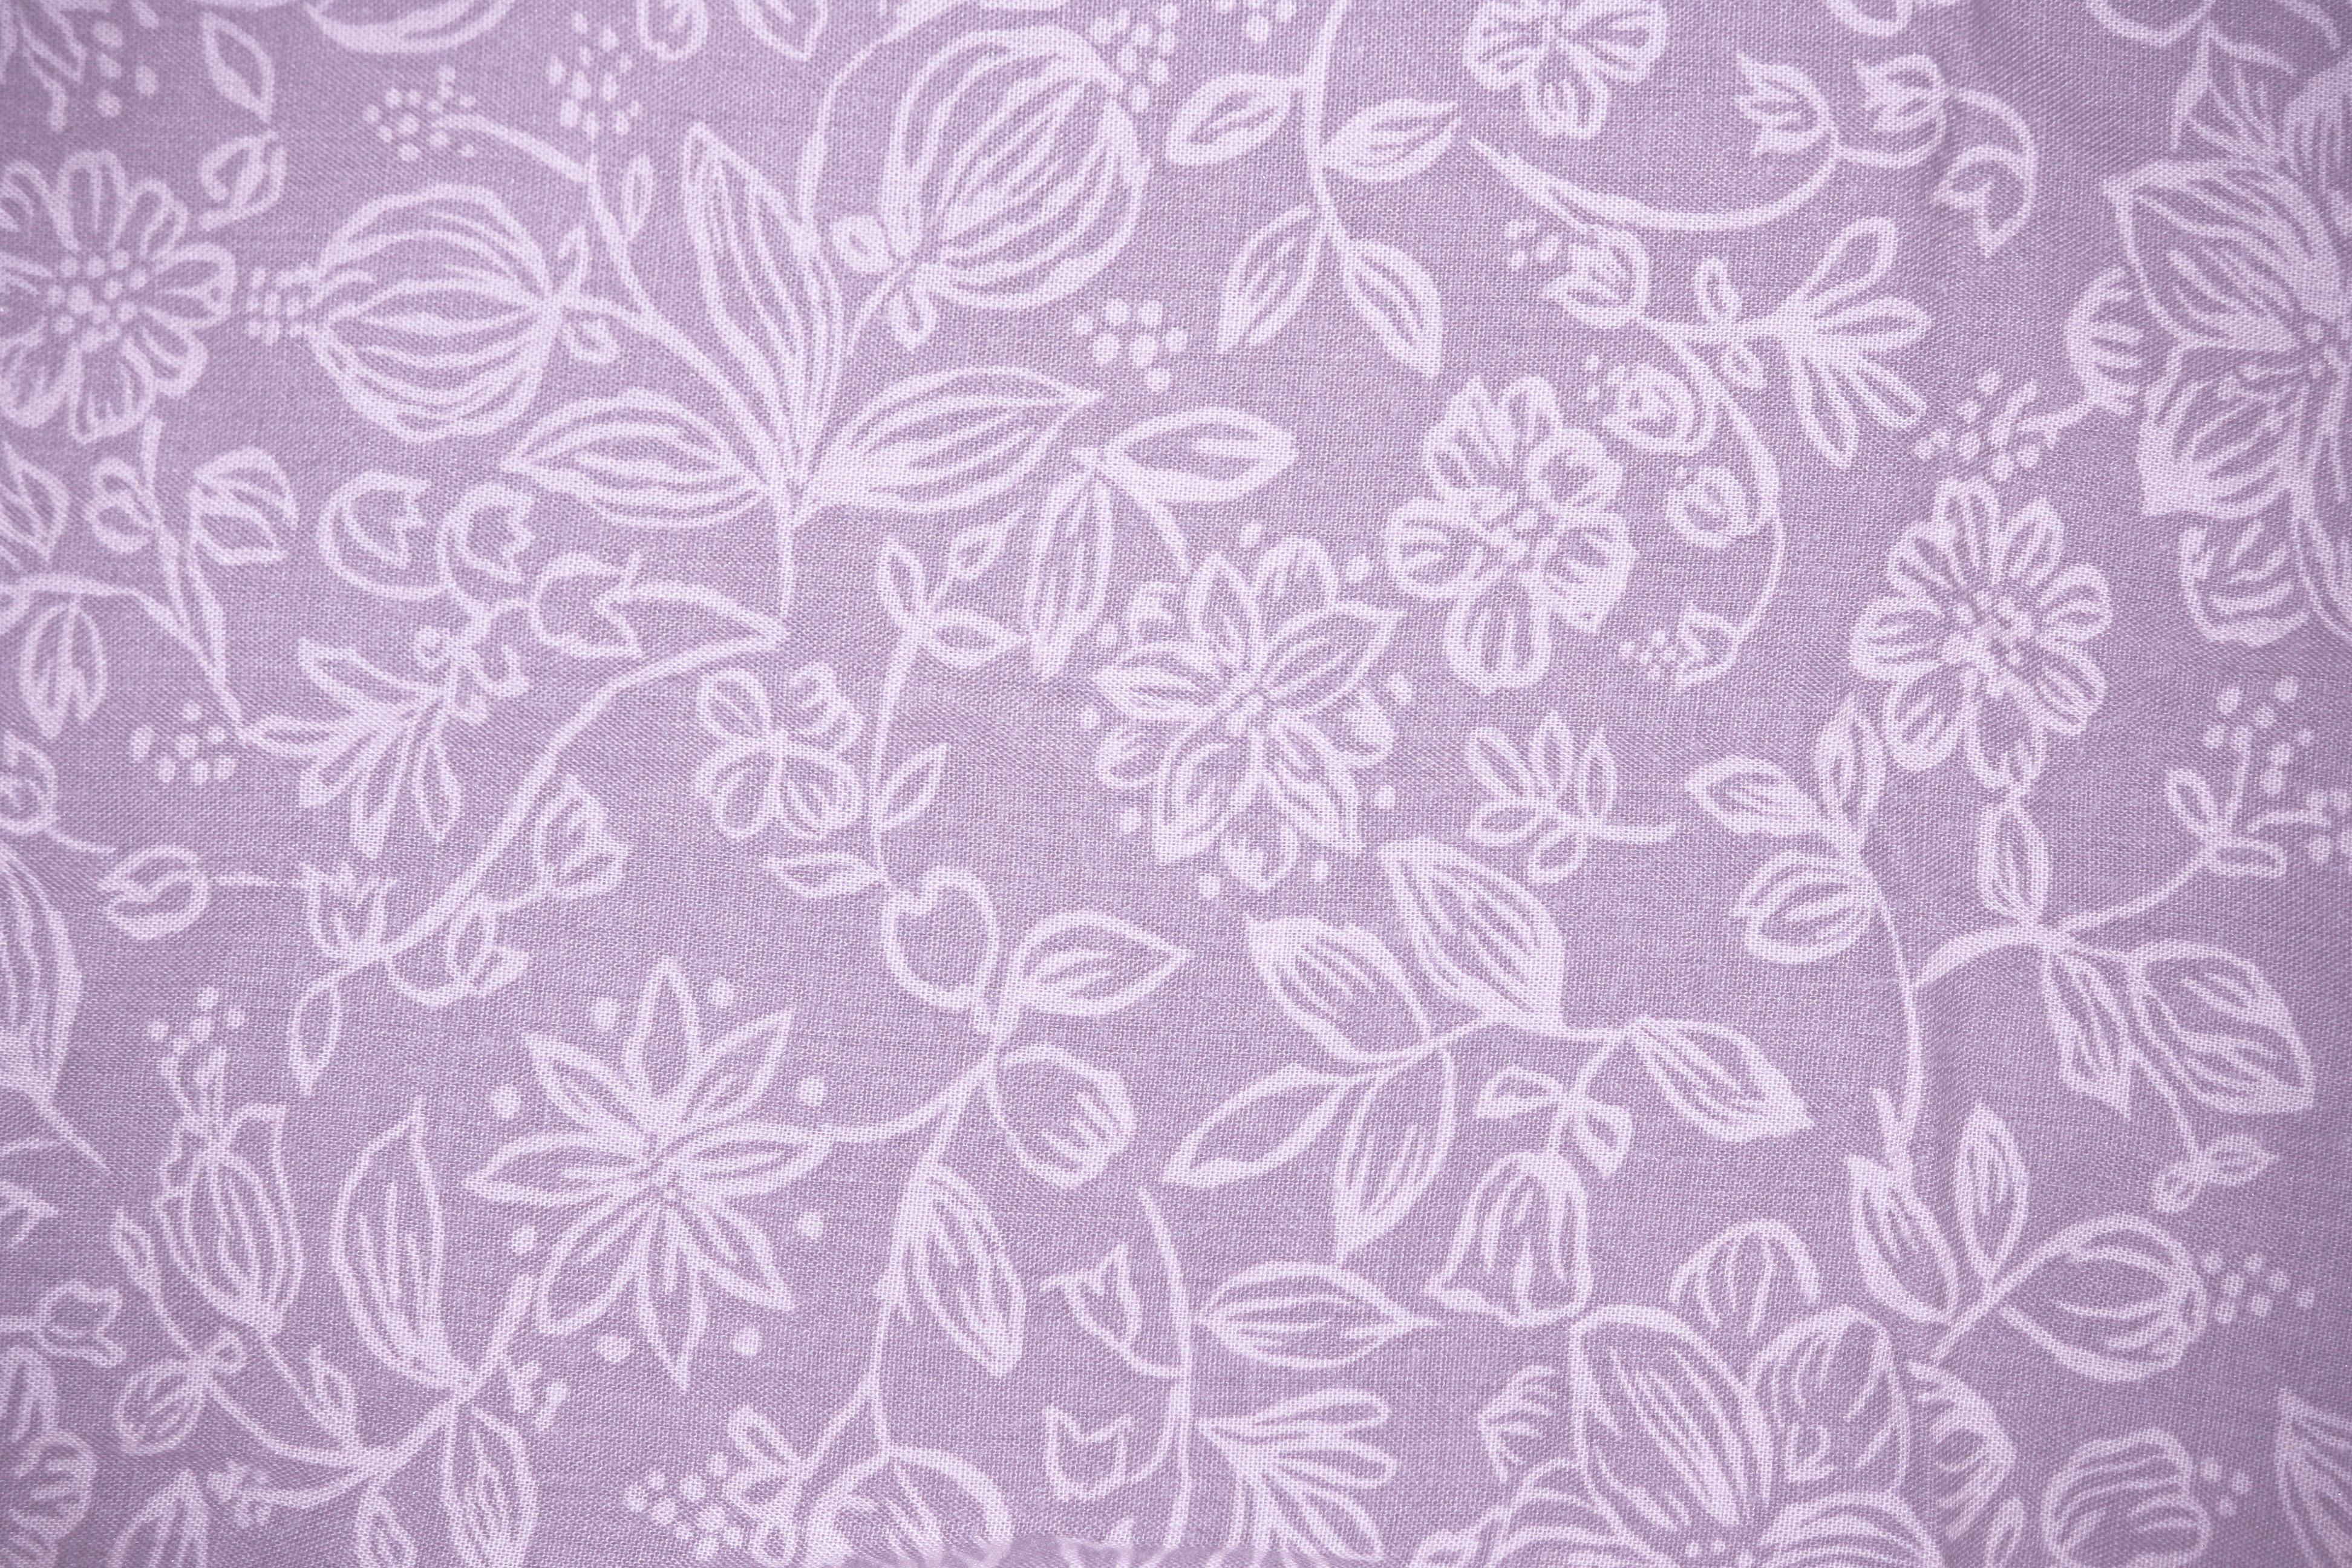 Purple vintage floral pattern - photo#17